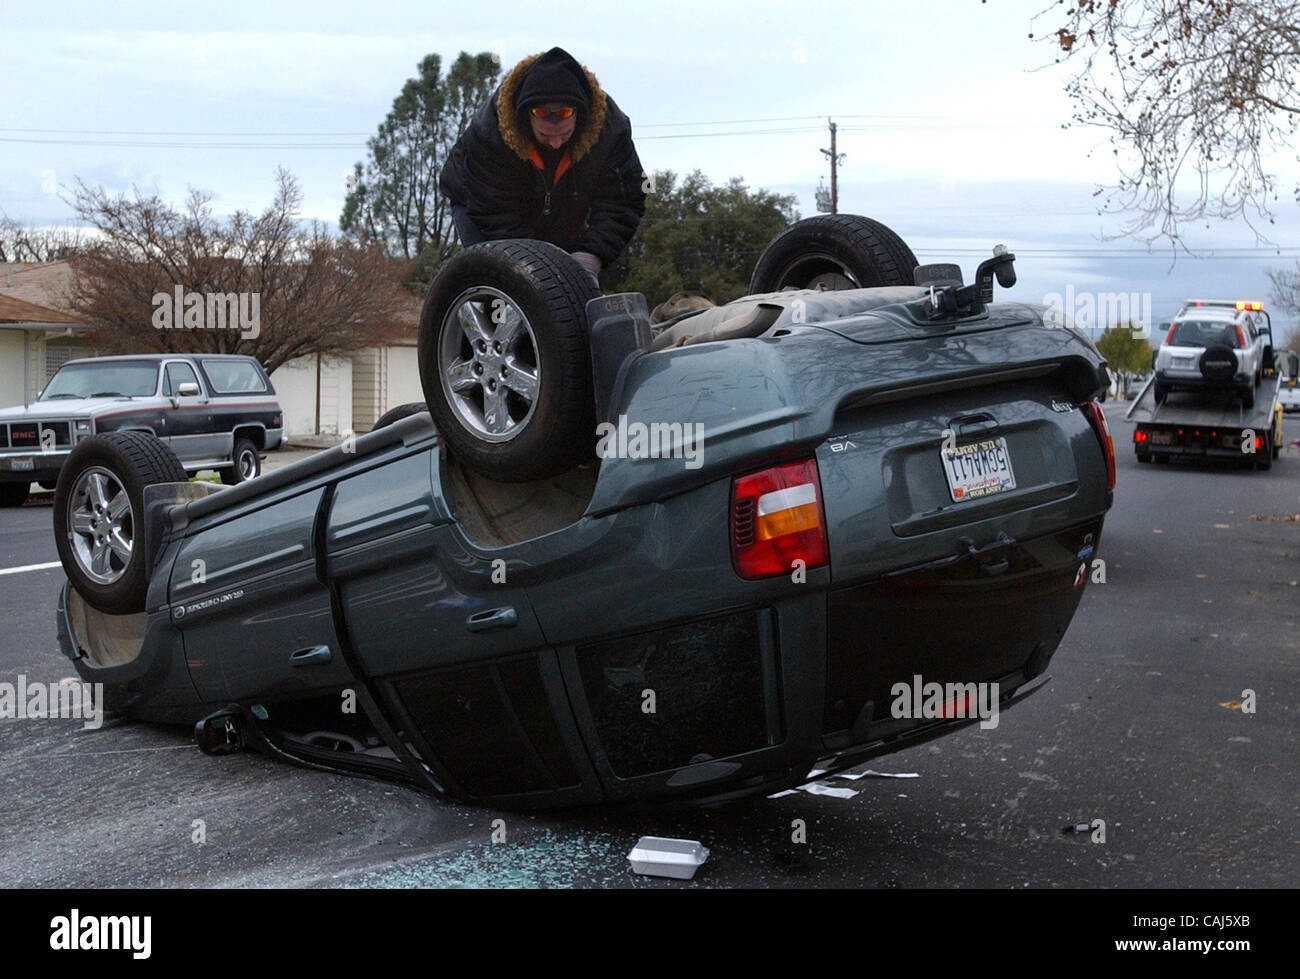 A tow truck operator works on uprighting an overturned 2004 Jeep Grand Cherokee that had been struck by a 1999 Honda - Stock Image